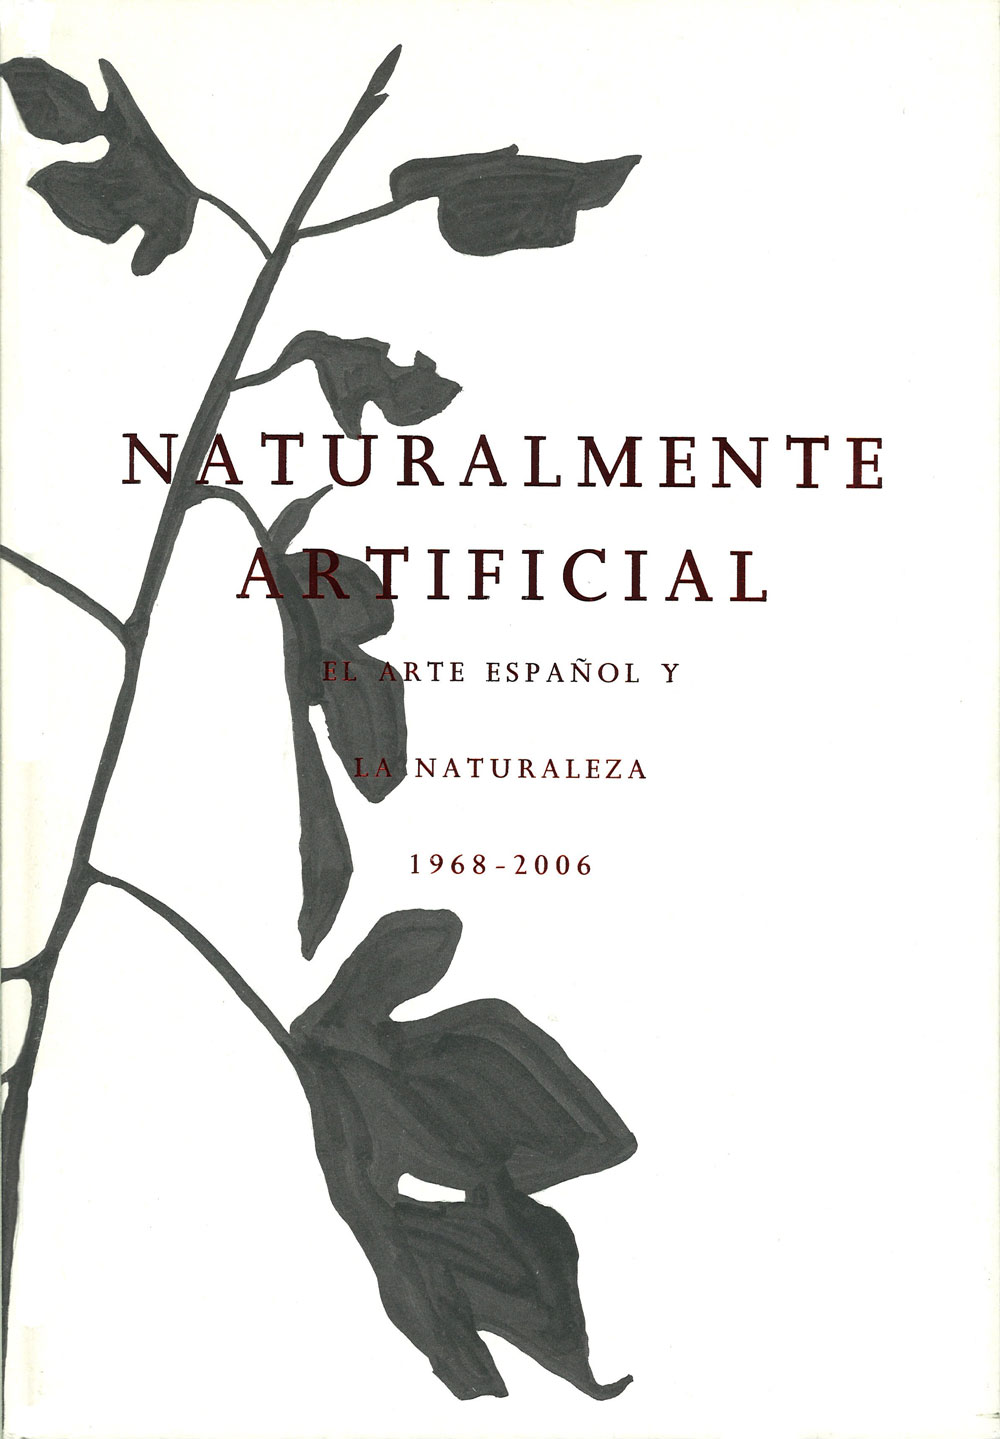 La Arte In Spanish Naturally Artifical Spanish Art And Nature 1968 2006 Museo De